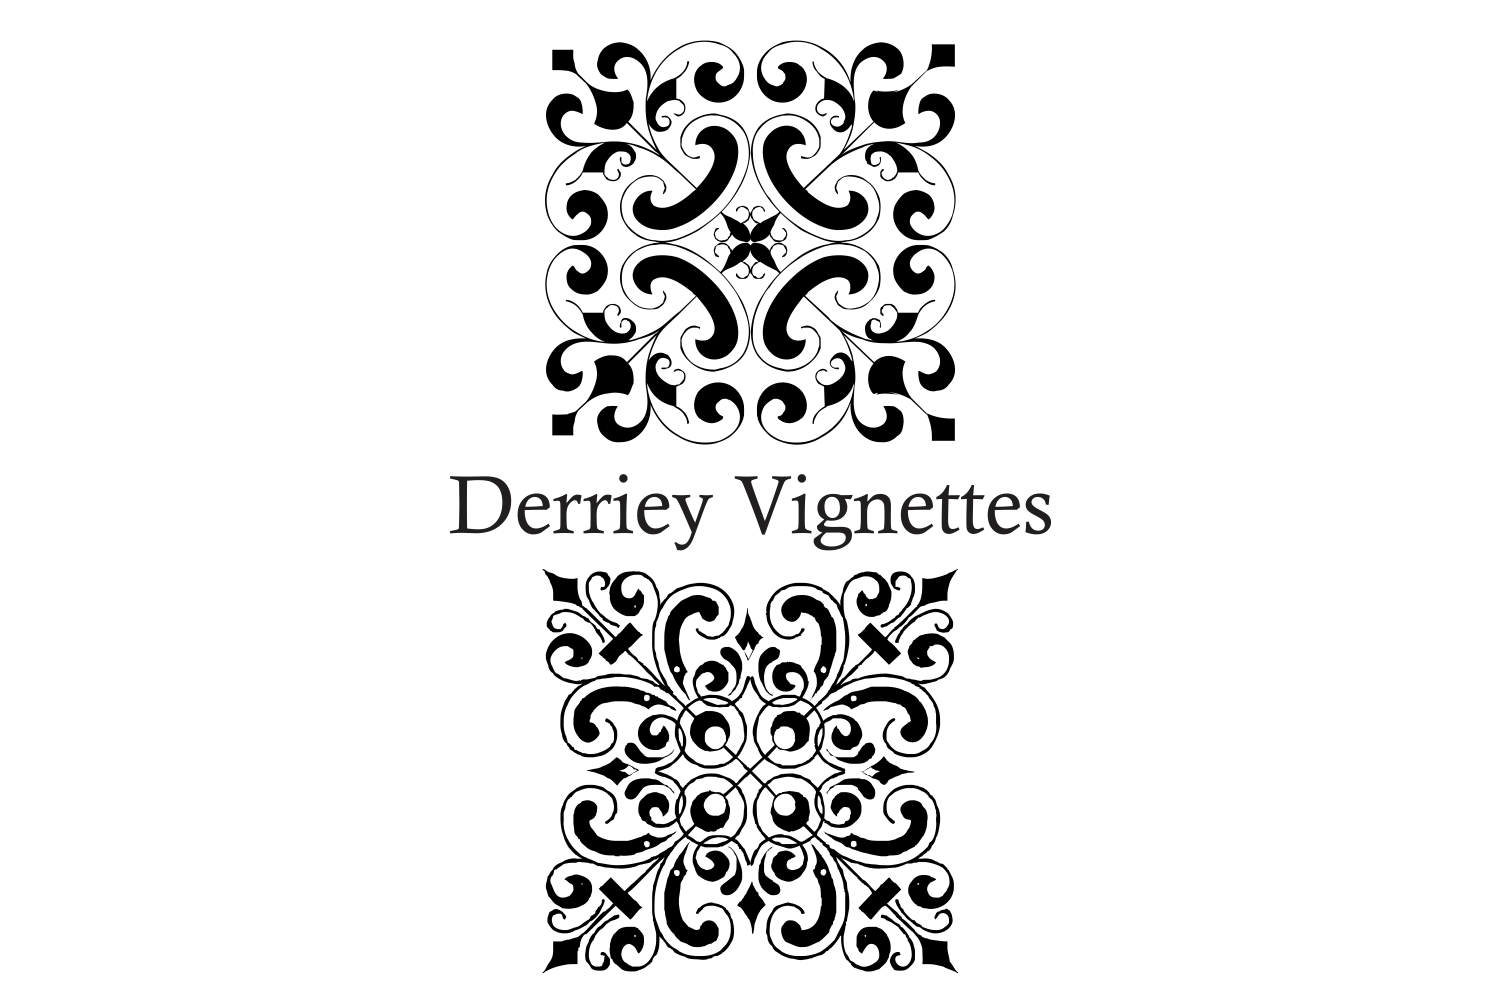 Derriey Vignettes Family Pack (5 fonts) example image 12